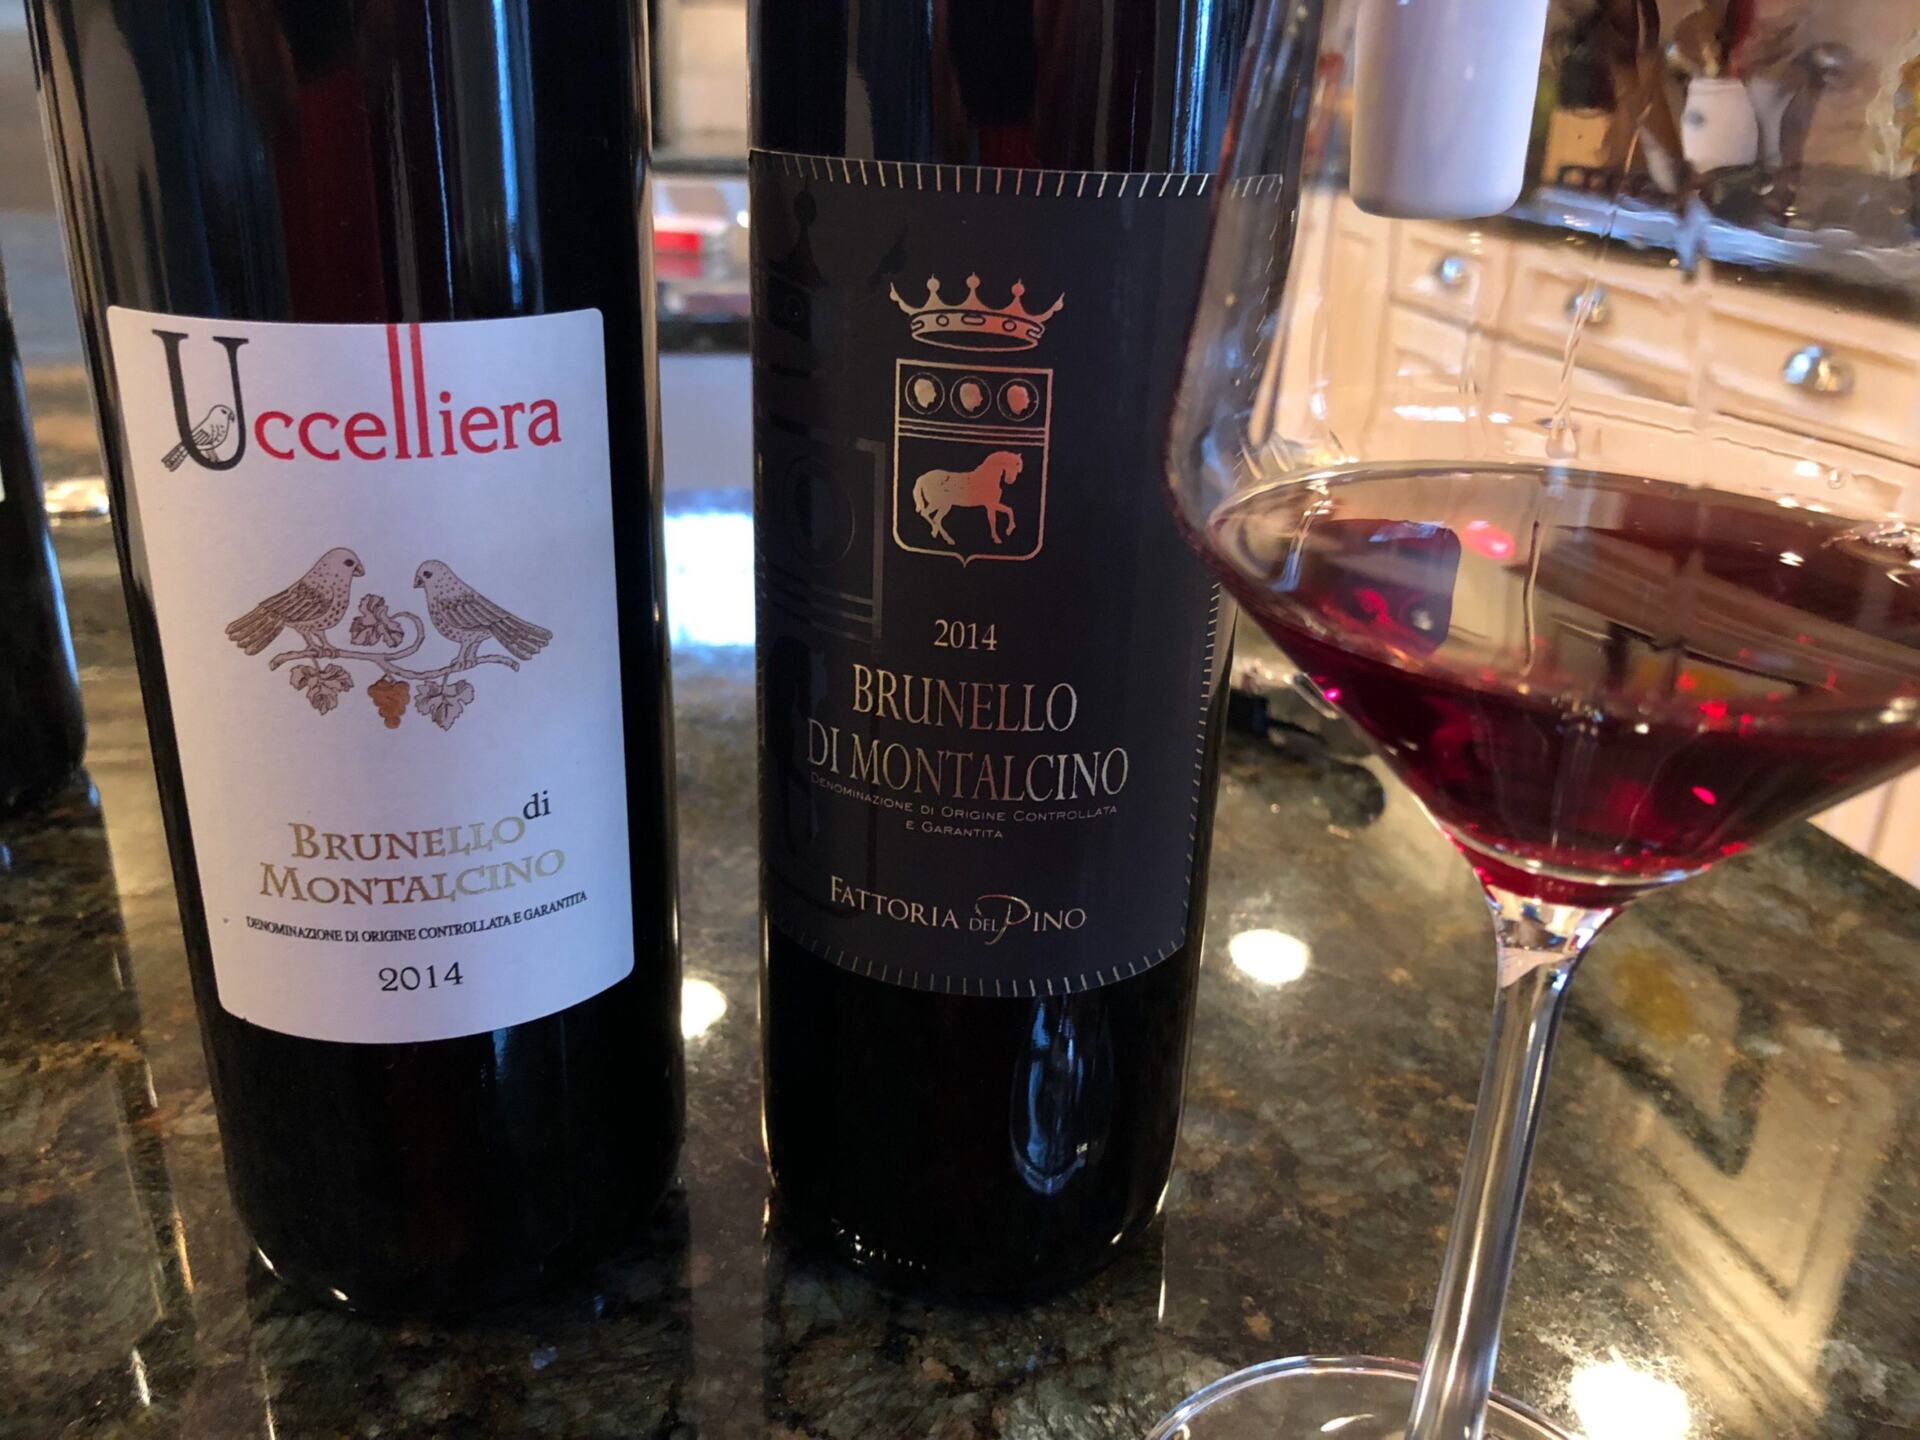 Brunello in bottle and glass